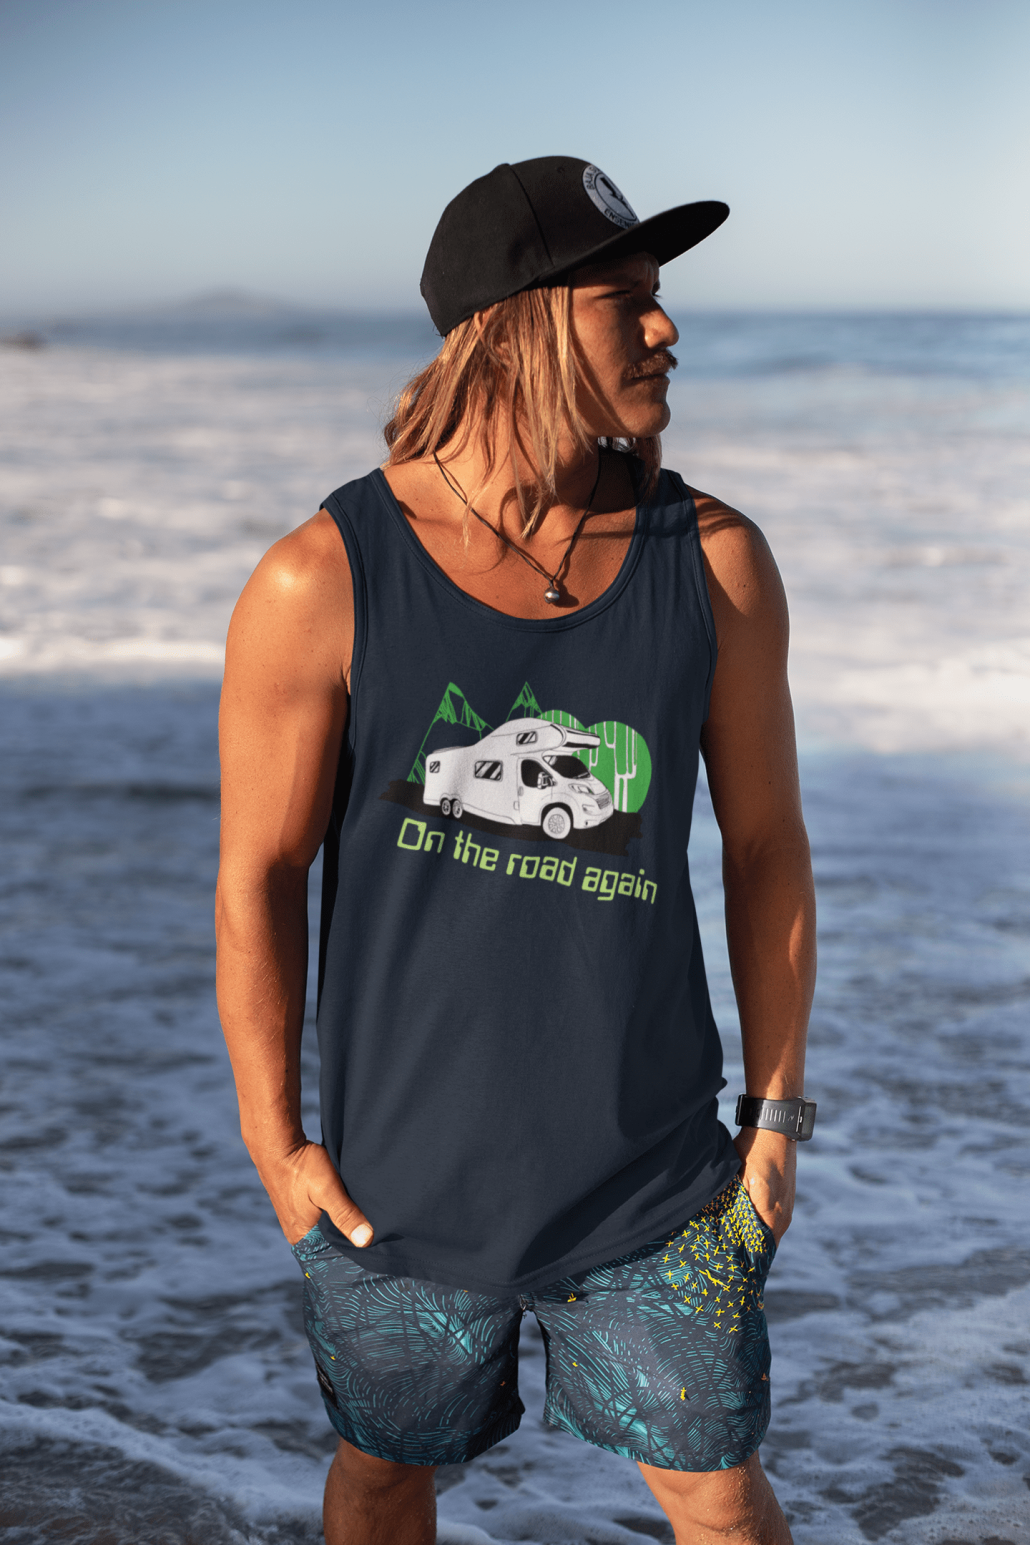 Surfer dude with custom tank top